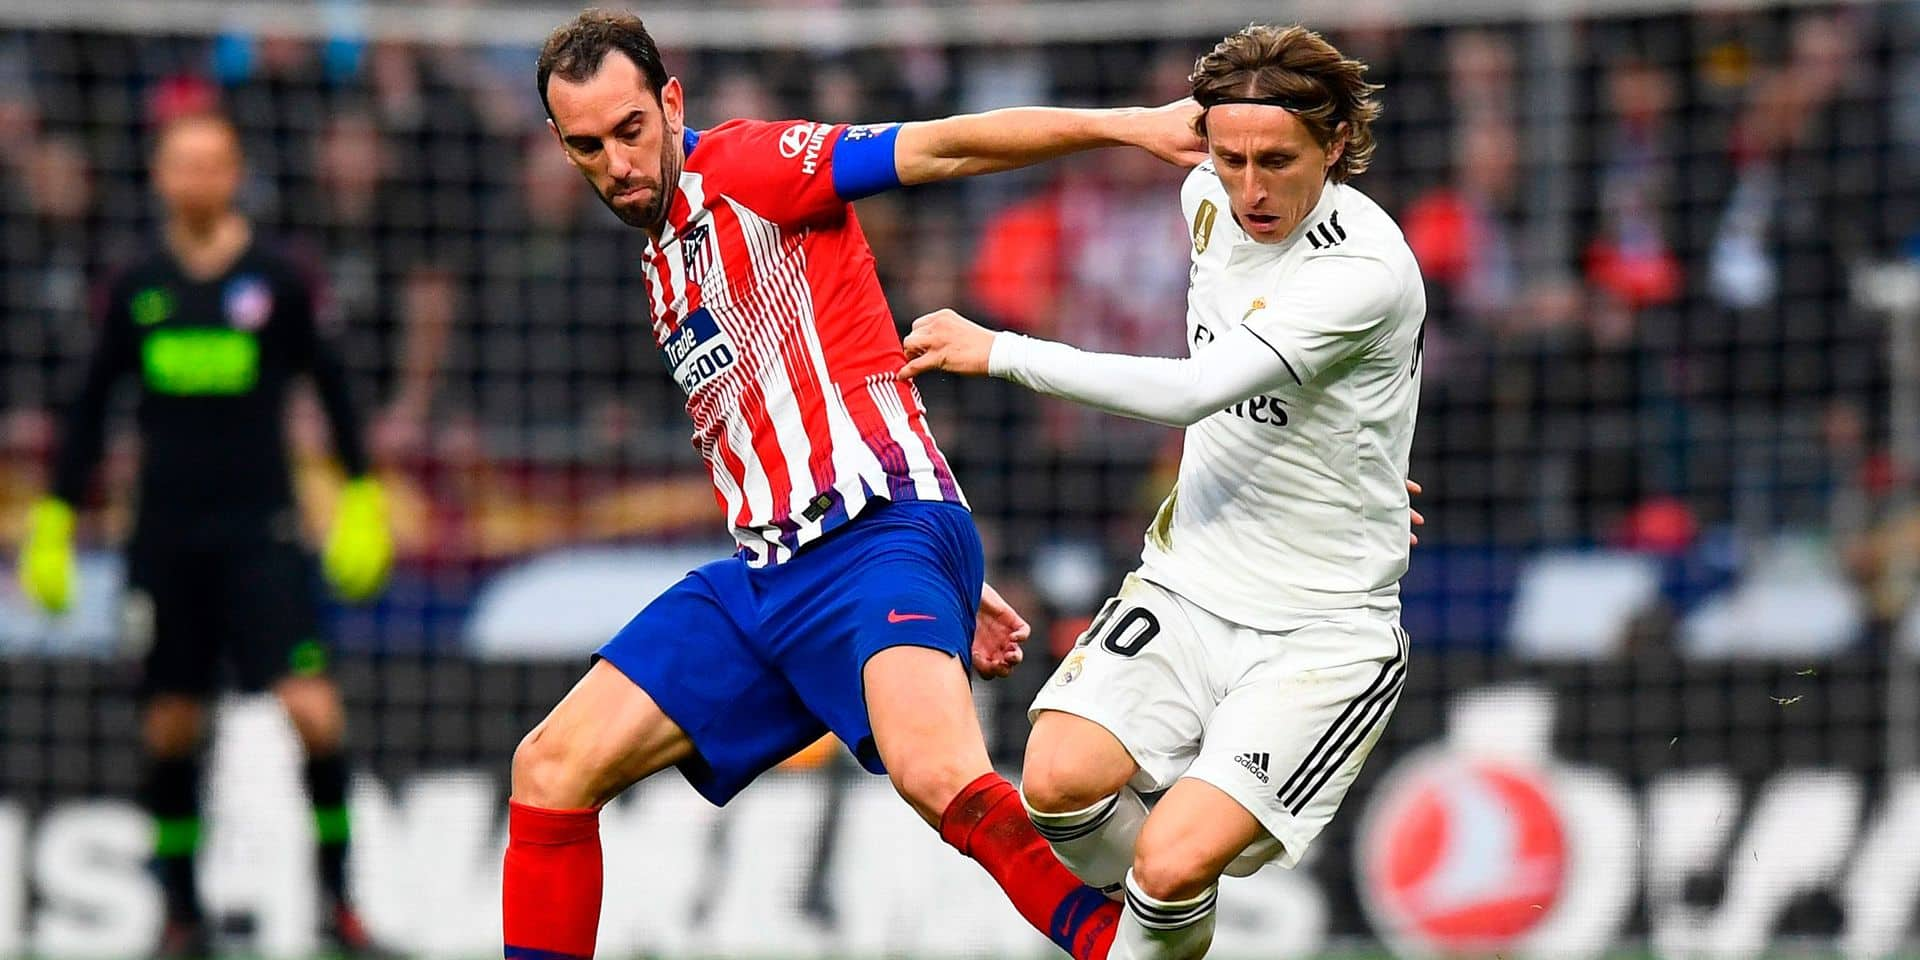 Atletico Madrid's Uruguayan defender Diego Godin (L) challenges Real Madrid's Croatian midfielder Luka Modric during the Spanish league football match between Club Atletico de Madrid and Real Madrid CF at the Wanda Metropolitano stadium in Madrid on February 9, 2019. (Photo by GABRIEL BOUYS / AFP)